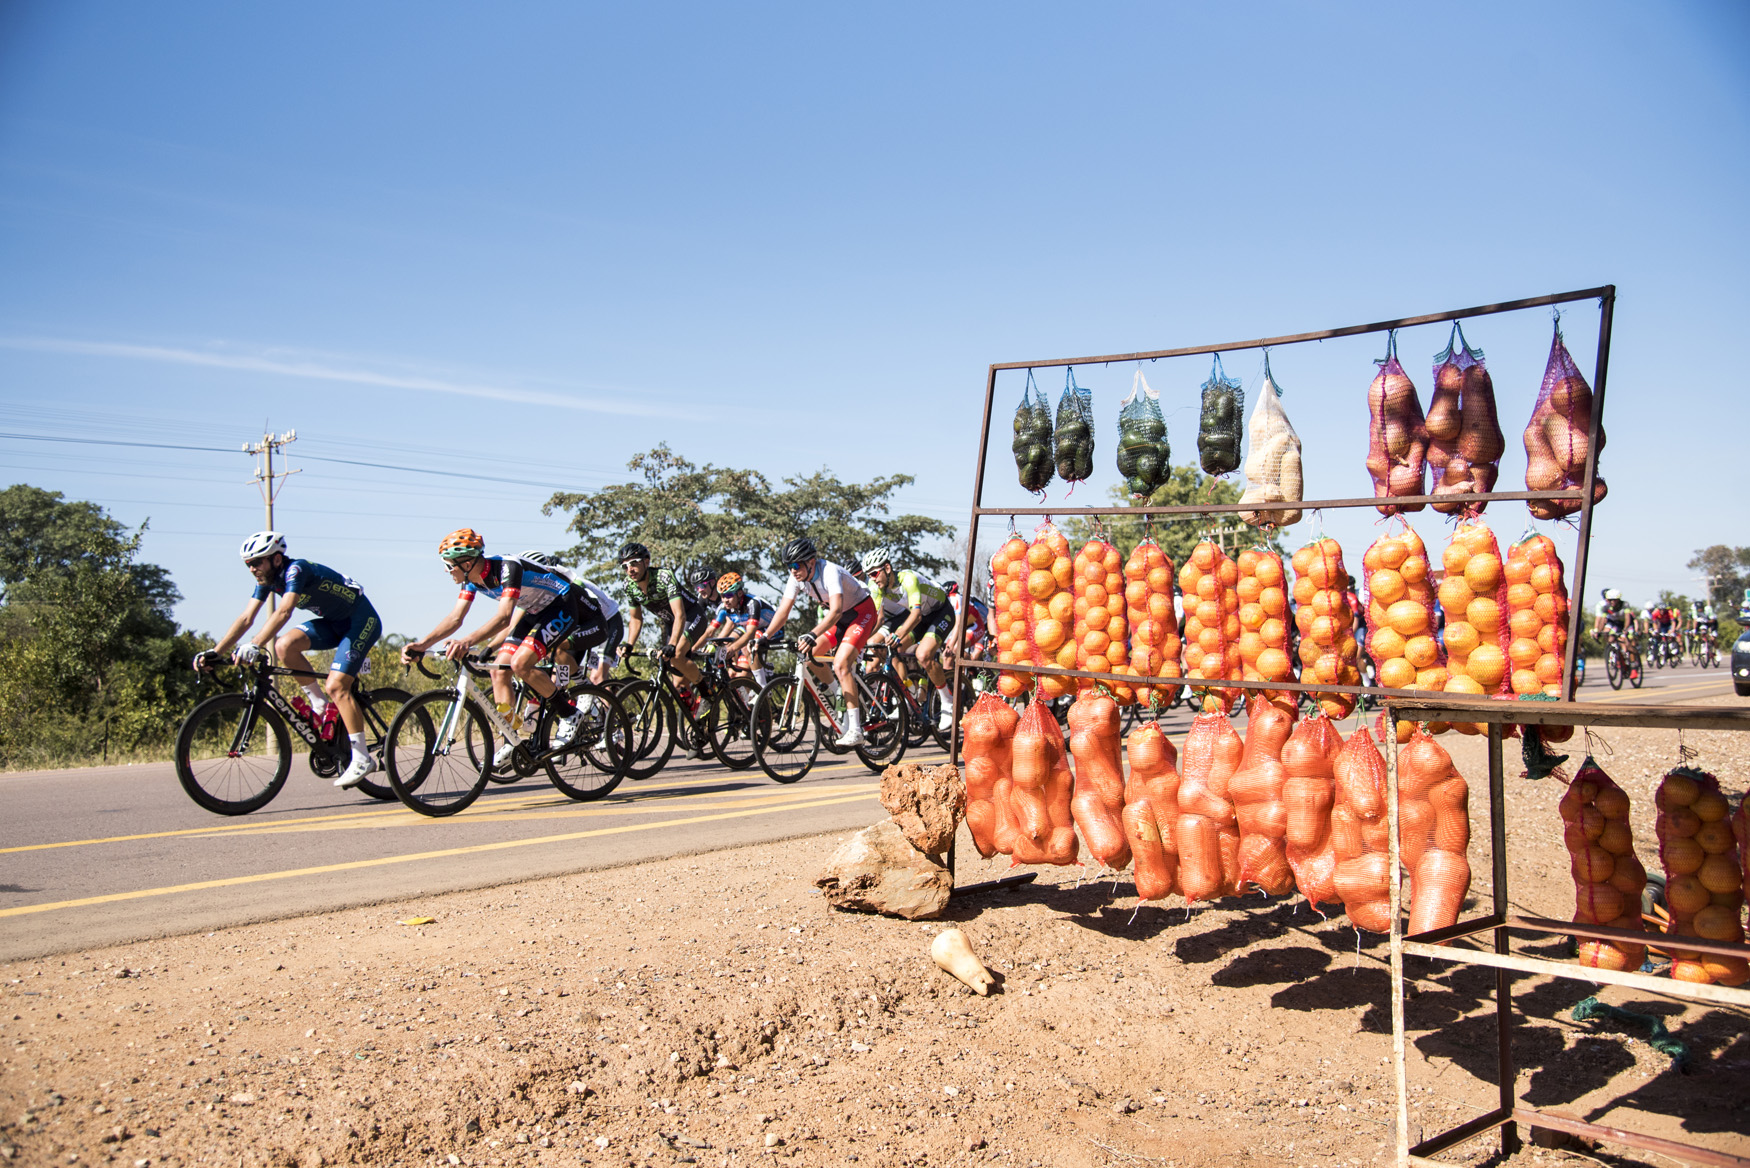 Selling local produce from the roadside vendors along the R101 from Bela Bela to Polokwane on Stage 1 of the 2019 Tour de Limpopo (UCI 2.2) from 14-18 May © Tour de Limpopo/Andrew Mc Fadden